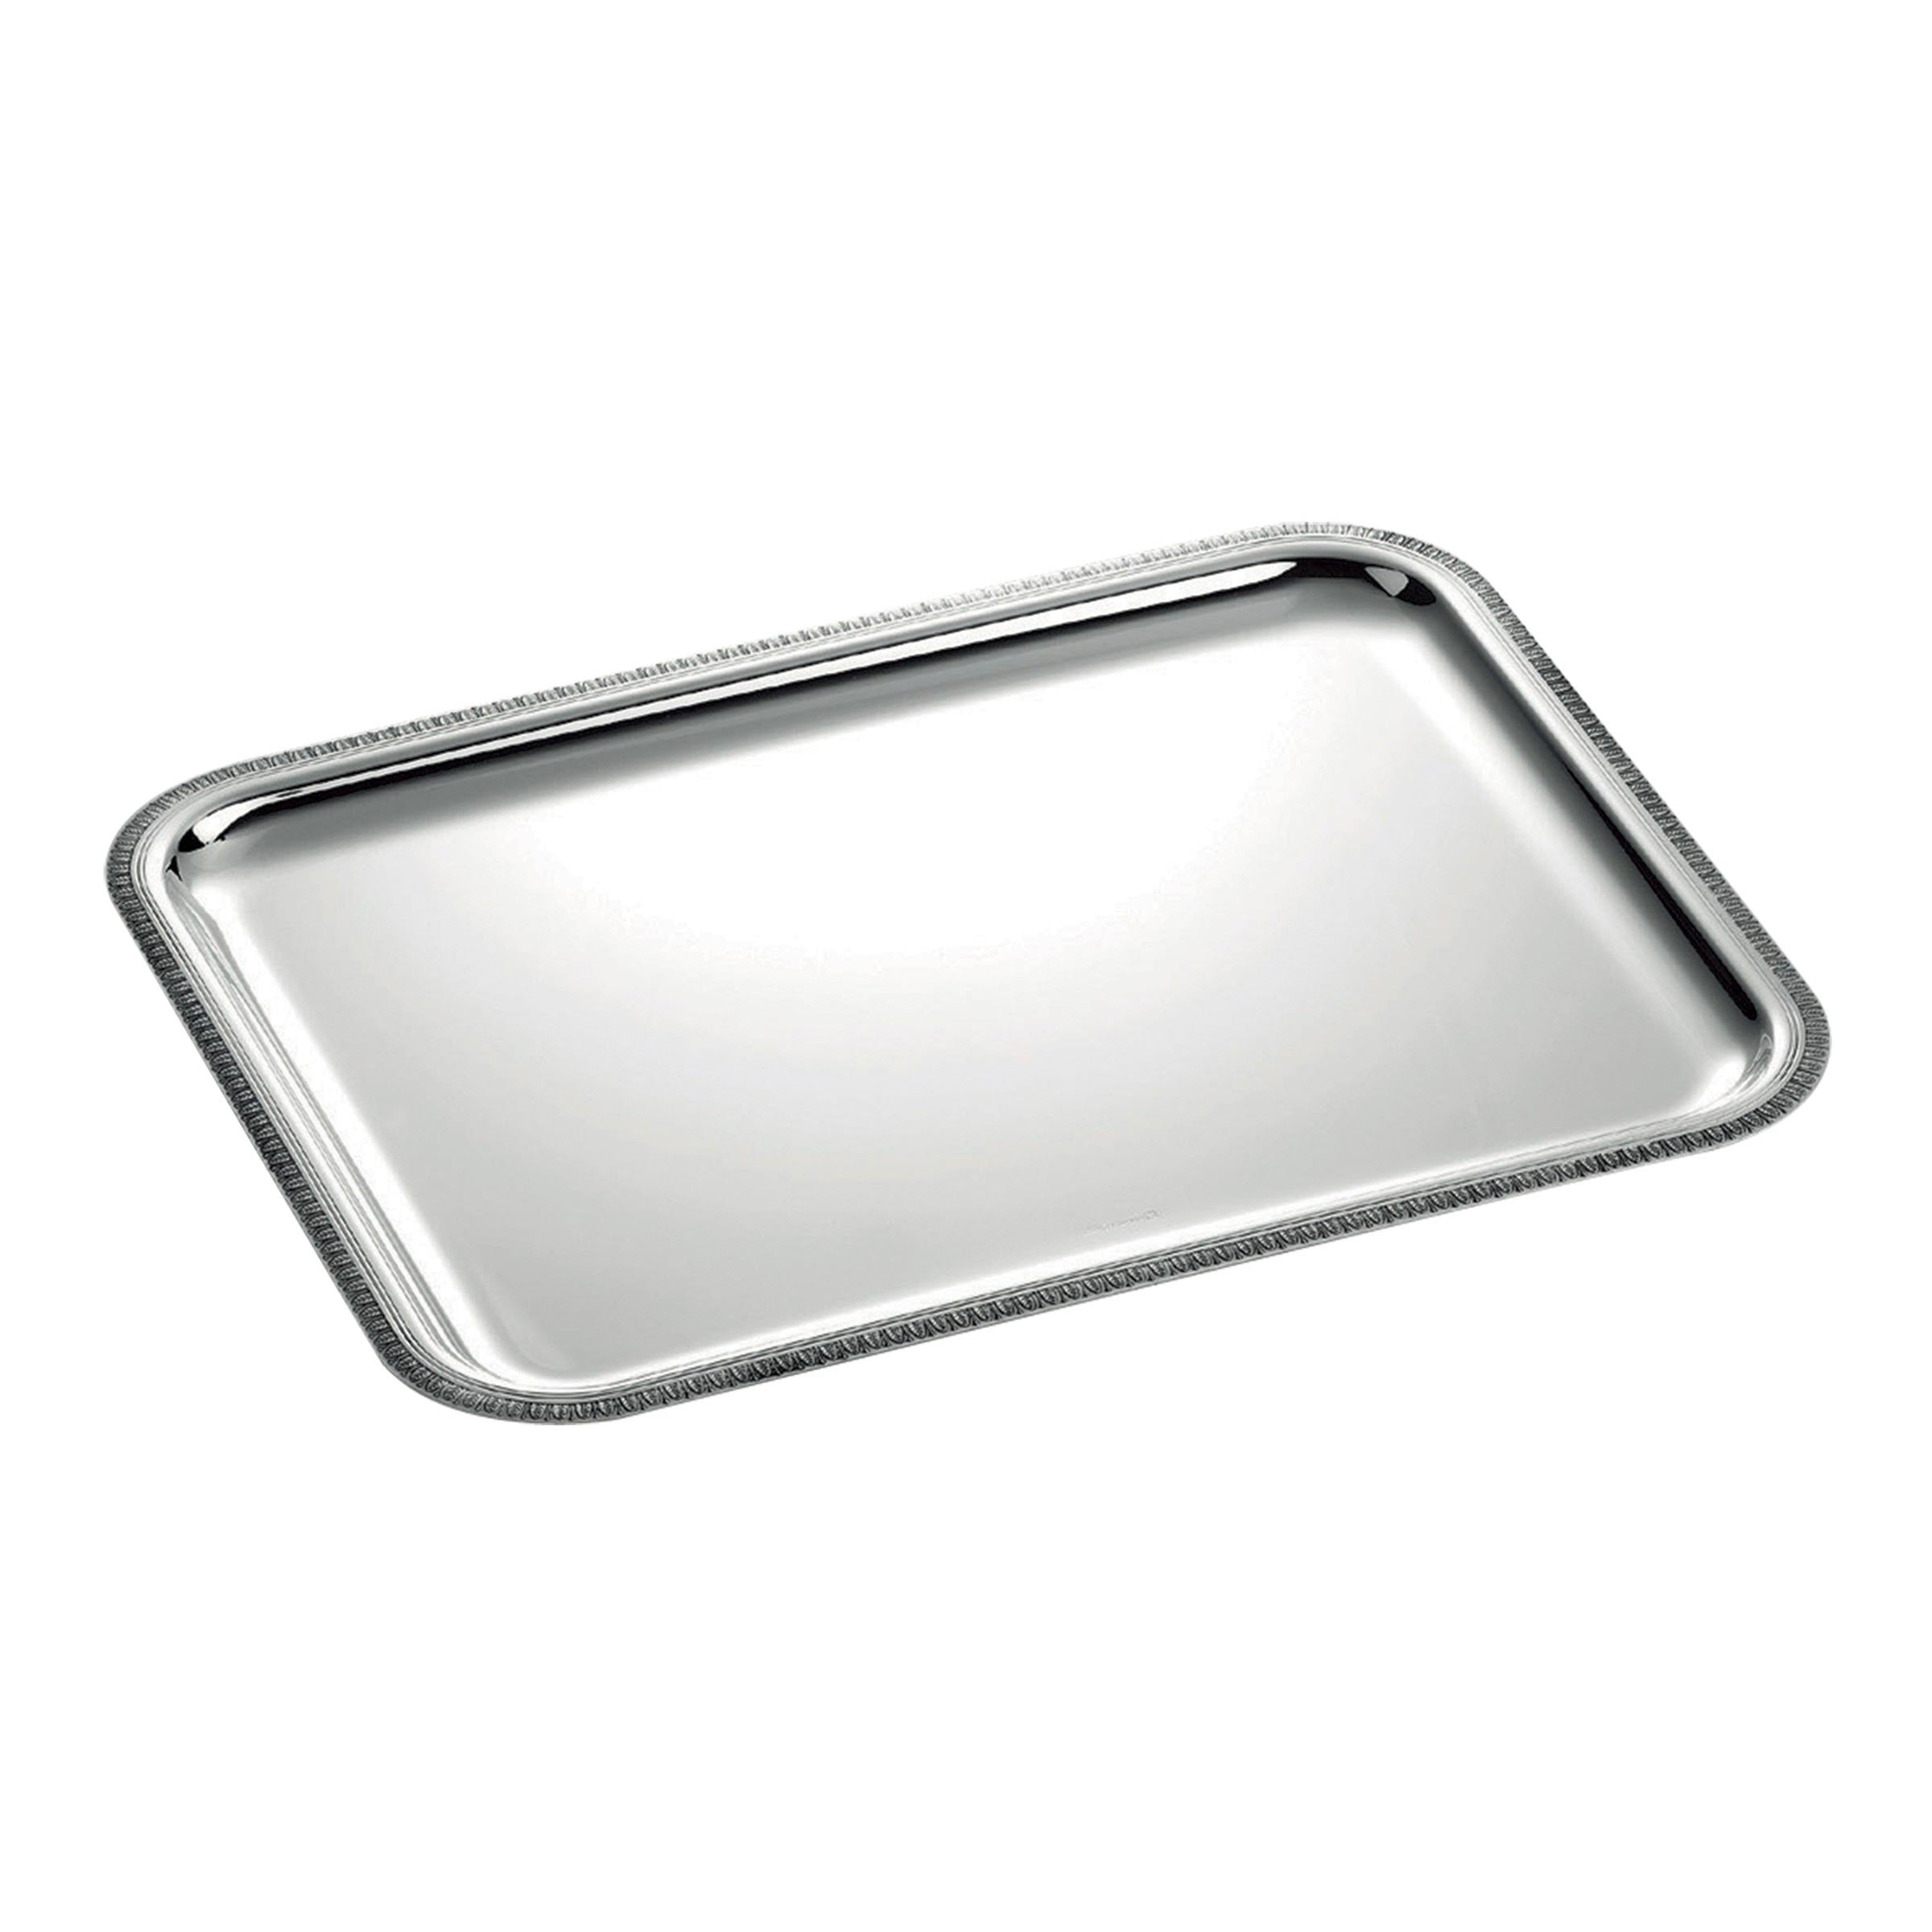 Christofle rectangular tray Large Malmaison rectangular yacht service tray